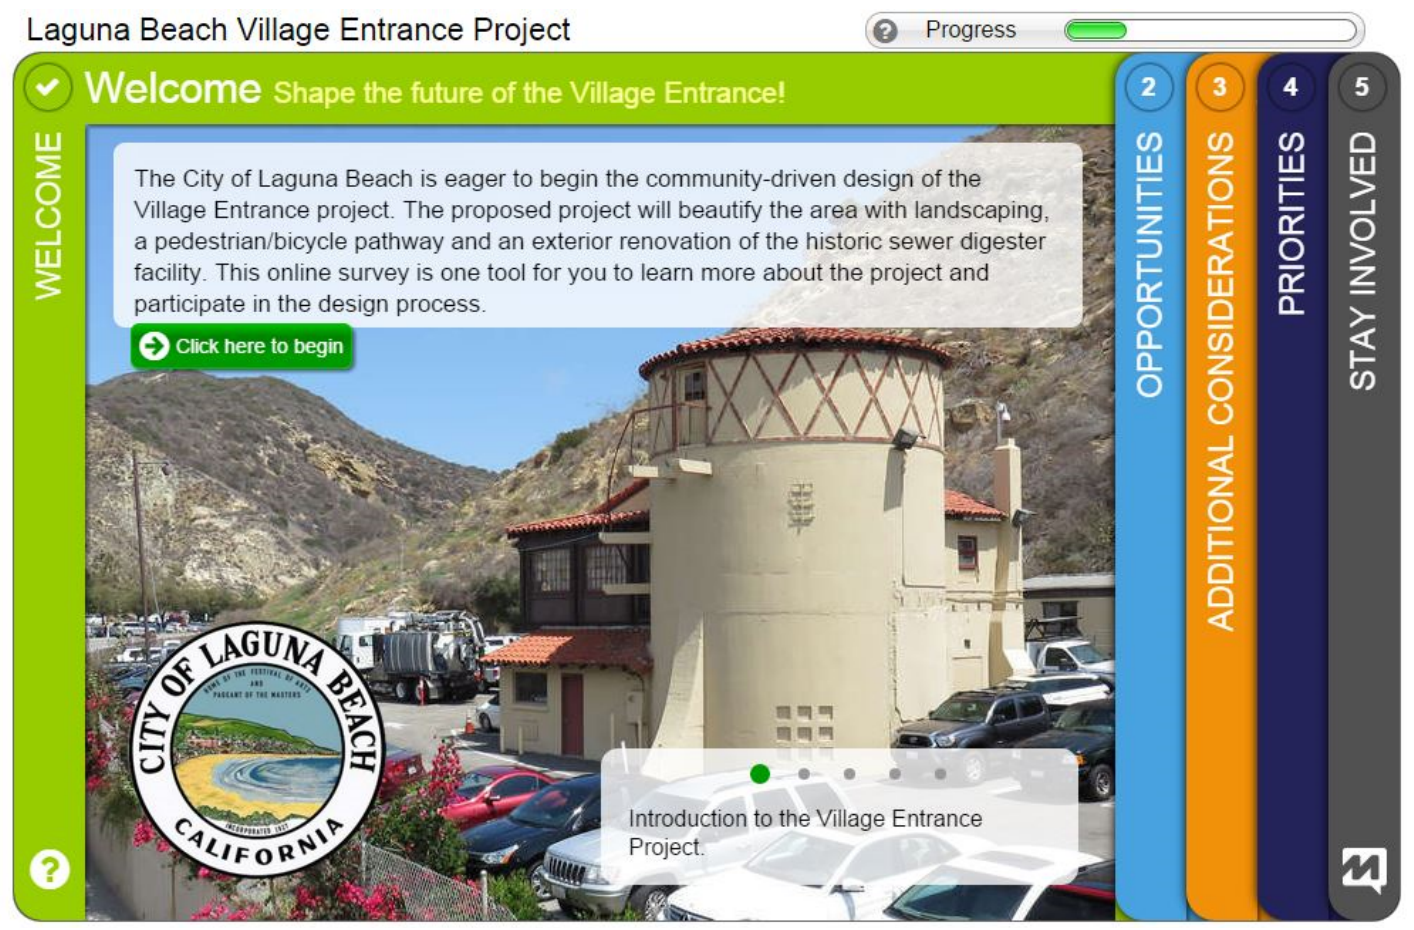 City of Laguna Beach | Village Entrance Project - Developed and implemented an outreach strategy to assist in the development of the Village Entrance in Laguna Beach, a project stalled for 25-years due to community contention. A community-supported plan was developed and adopted by City Council in 2016.